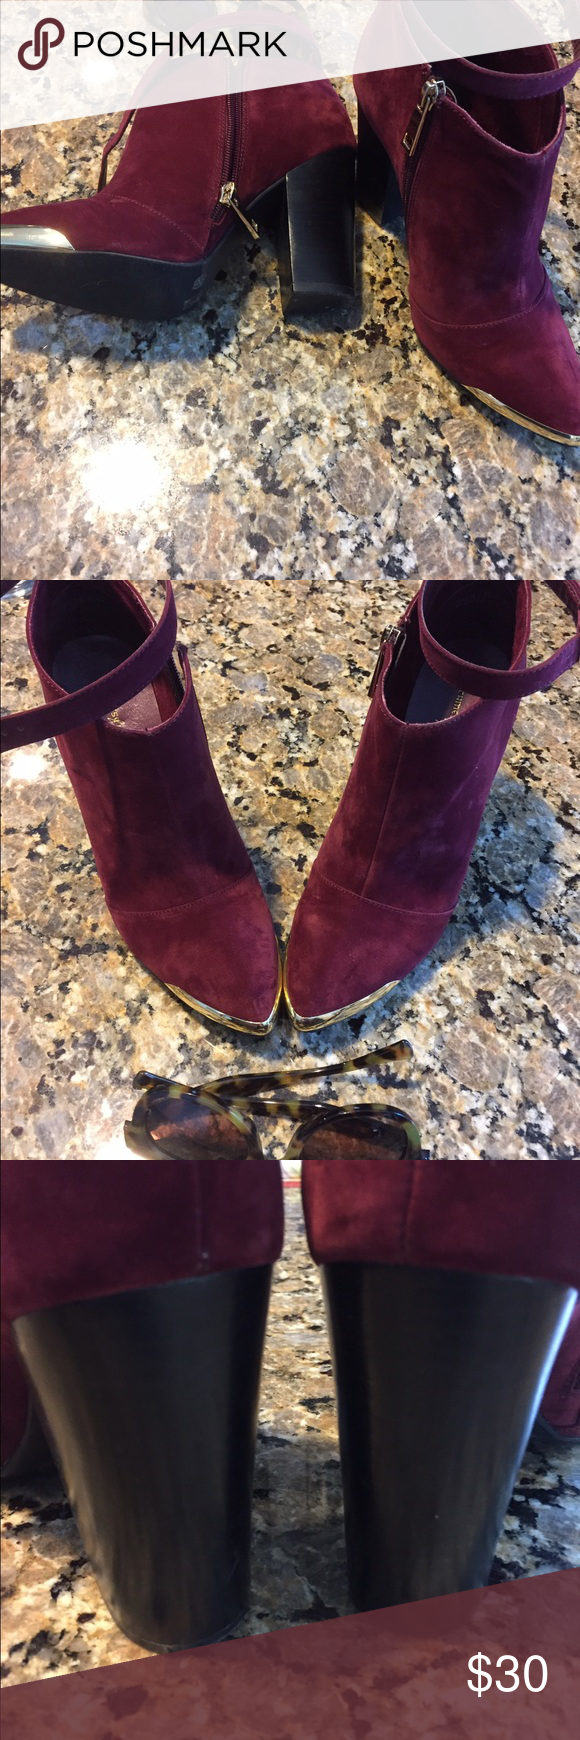 Chinese Laundry booties. Size 8 Worn twice.  Cranberry suede with gold details.  Heel height is 4 inches Chinese Laundry Shoes Ankle Boots & Booties